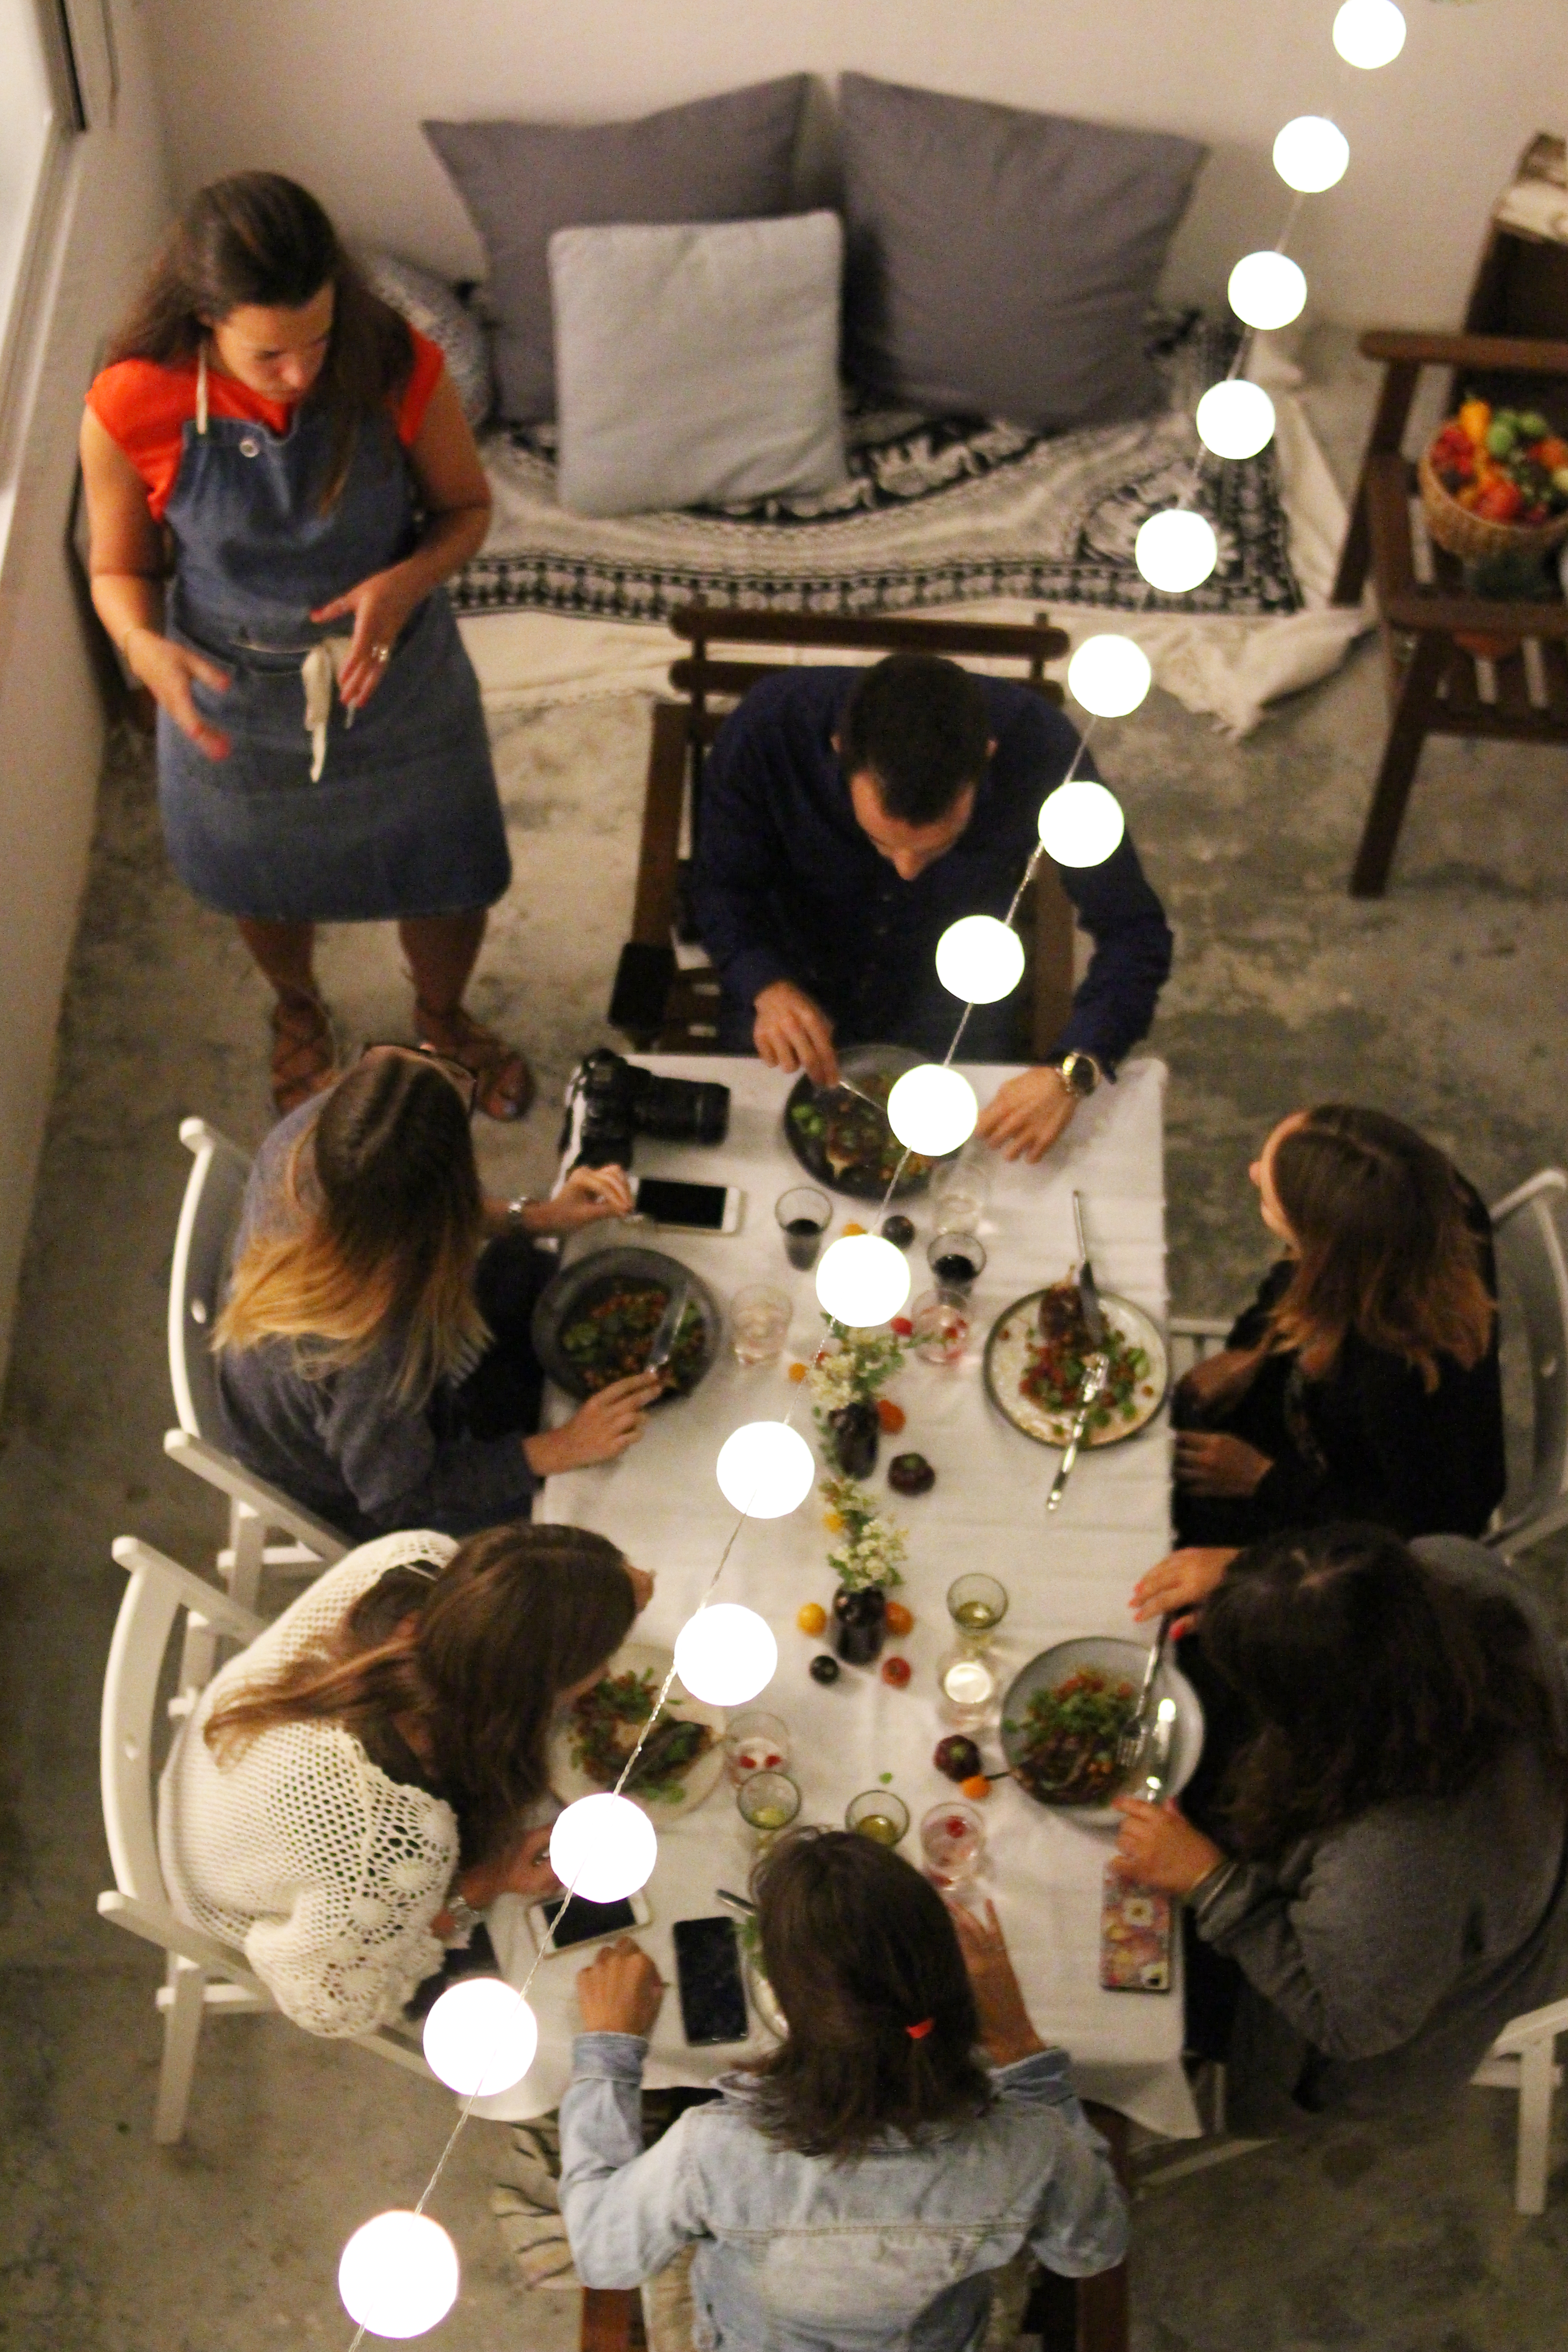 supper club | Joana Limao | Please Consider